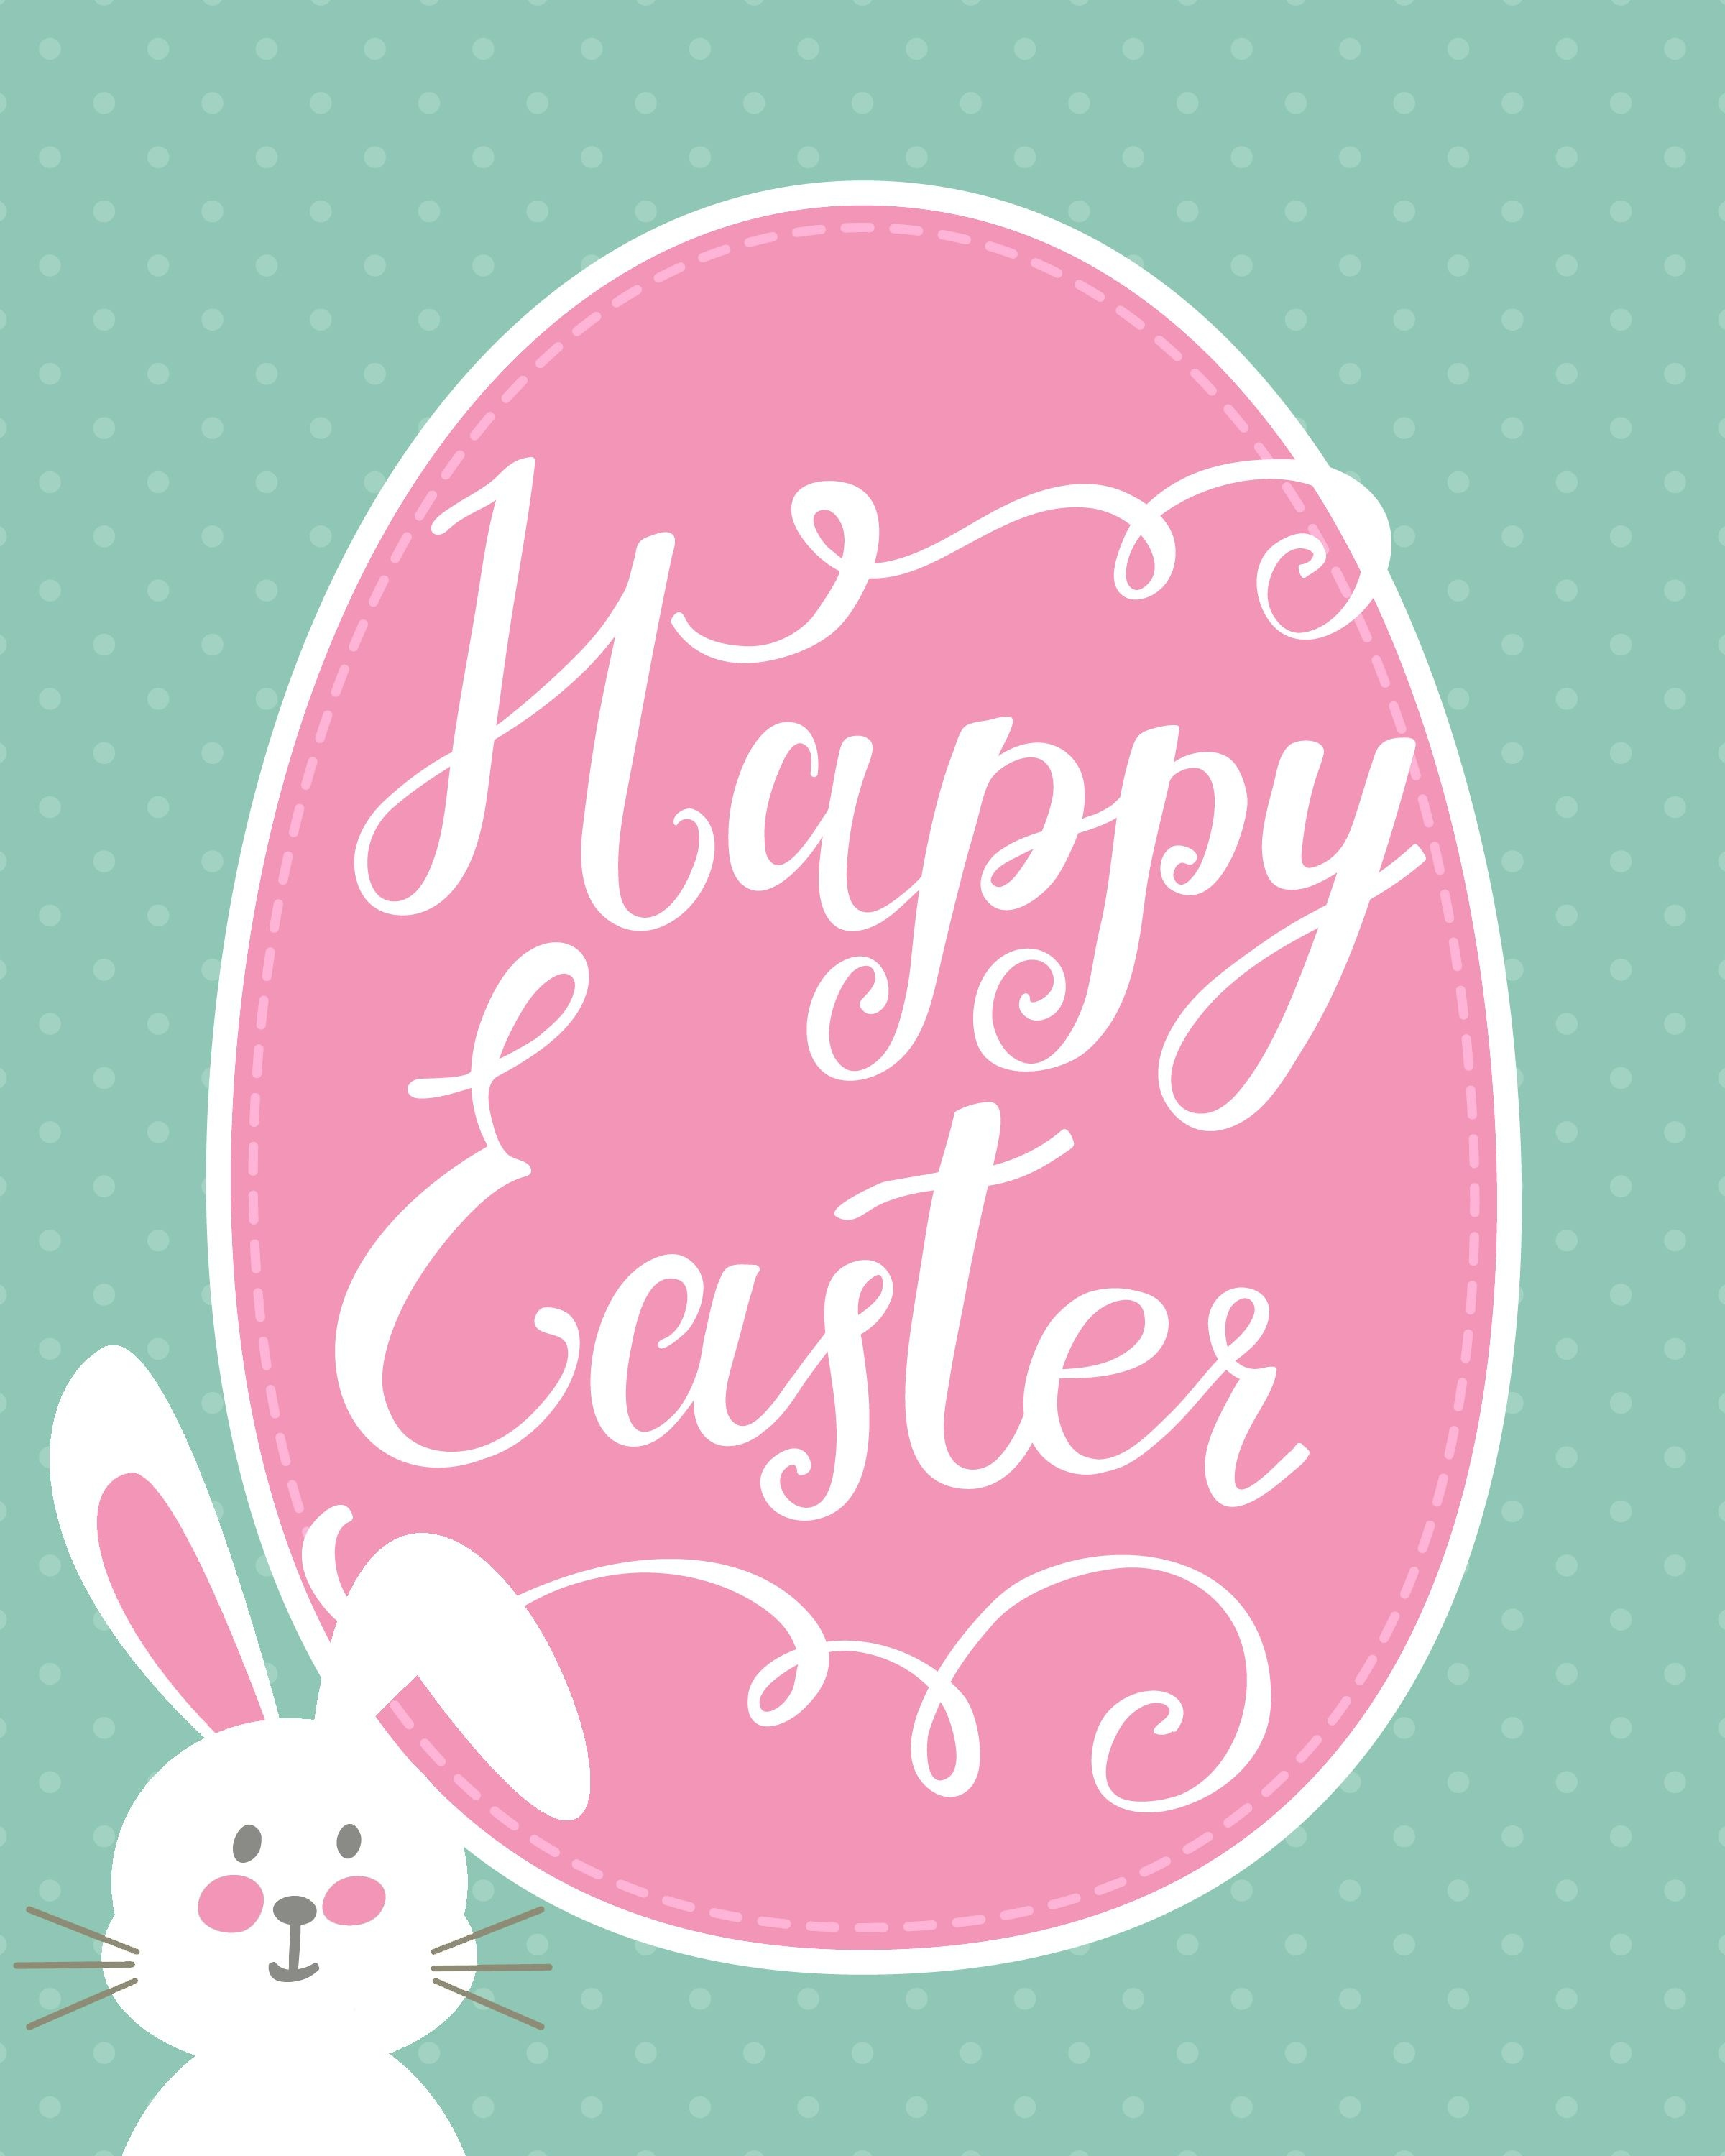 Happy Easter Bunny Printable | Holidays - Easter | Happy Easter - Free Printable Easter Greeting Cards